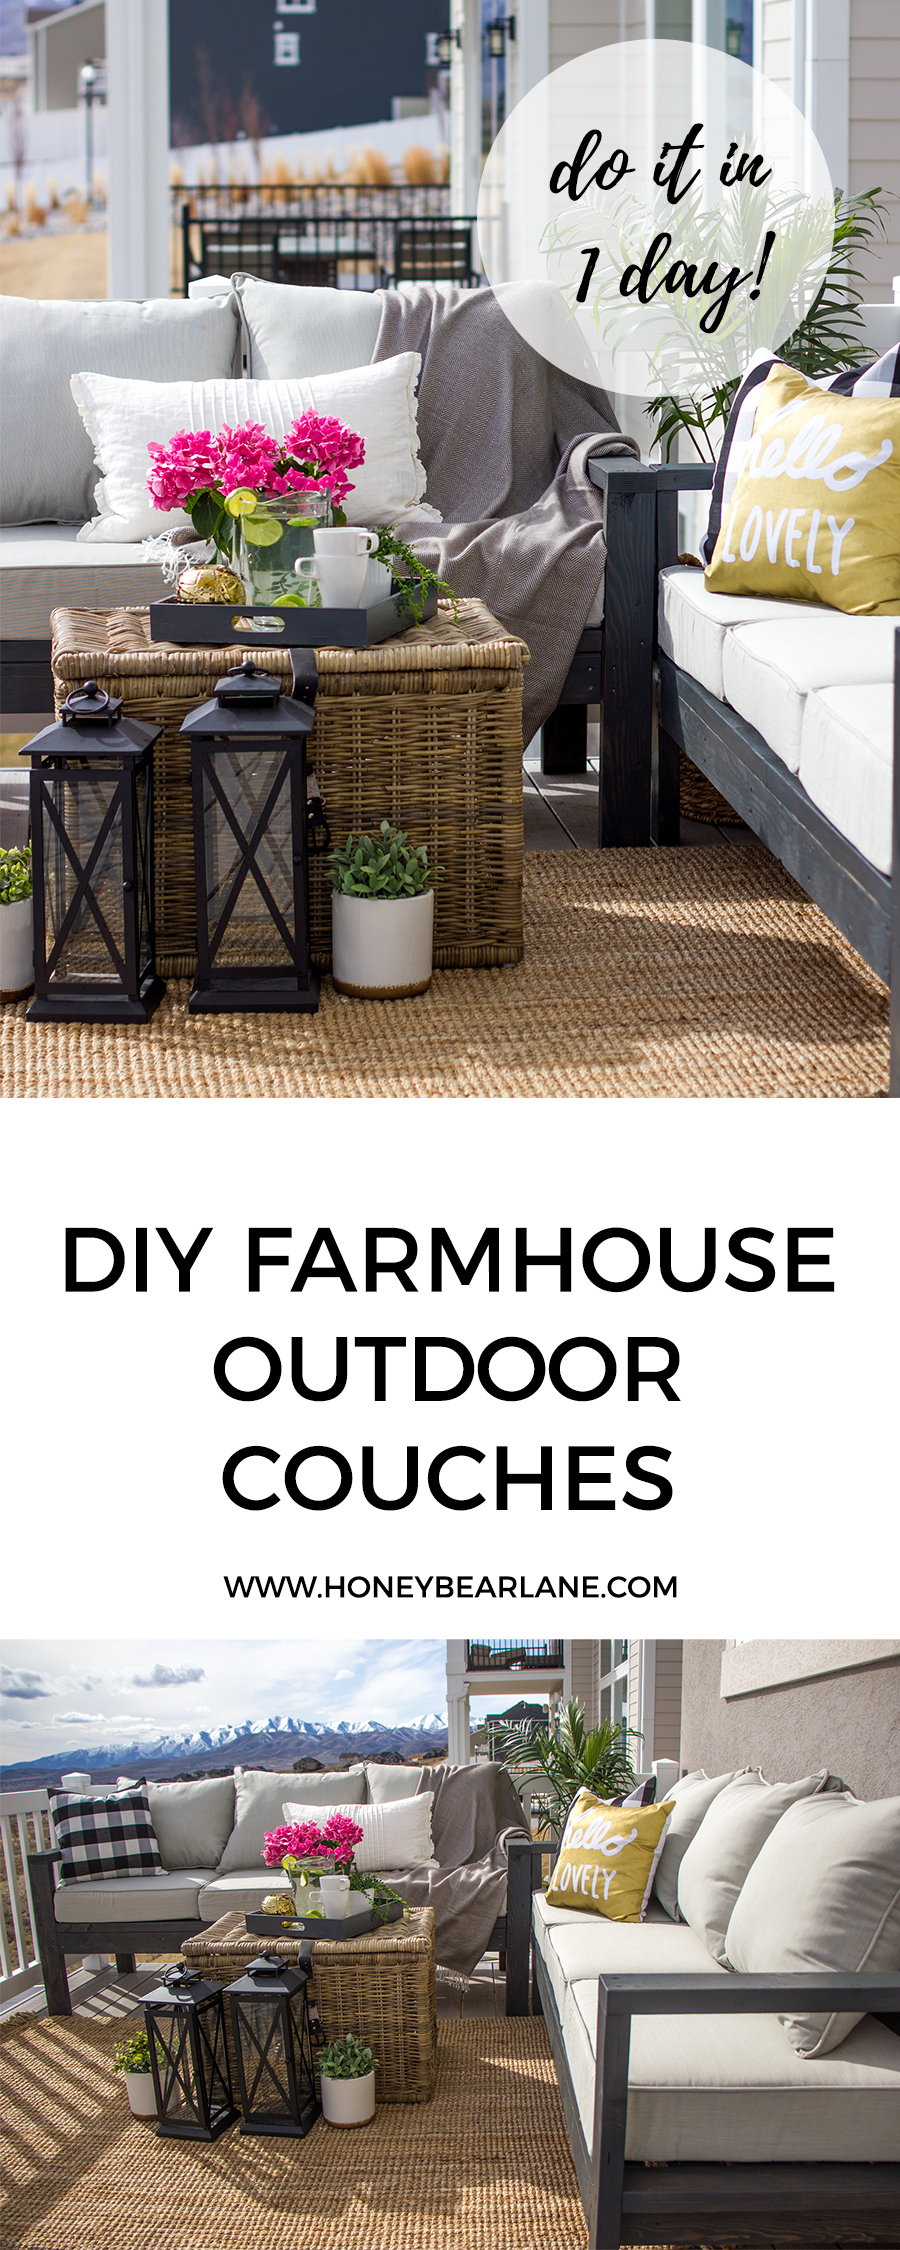 diy outdoor furniture couch build your own building this diy outdoor furniture was actually really easy and fast put the couches together in one afternoon stained them another afternoon outdoor furniture honeybear lane